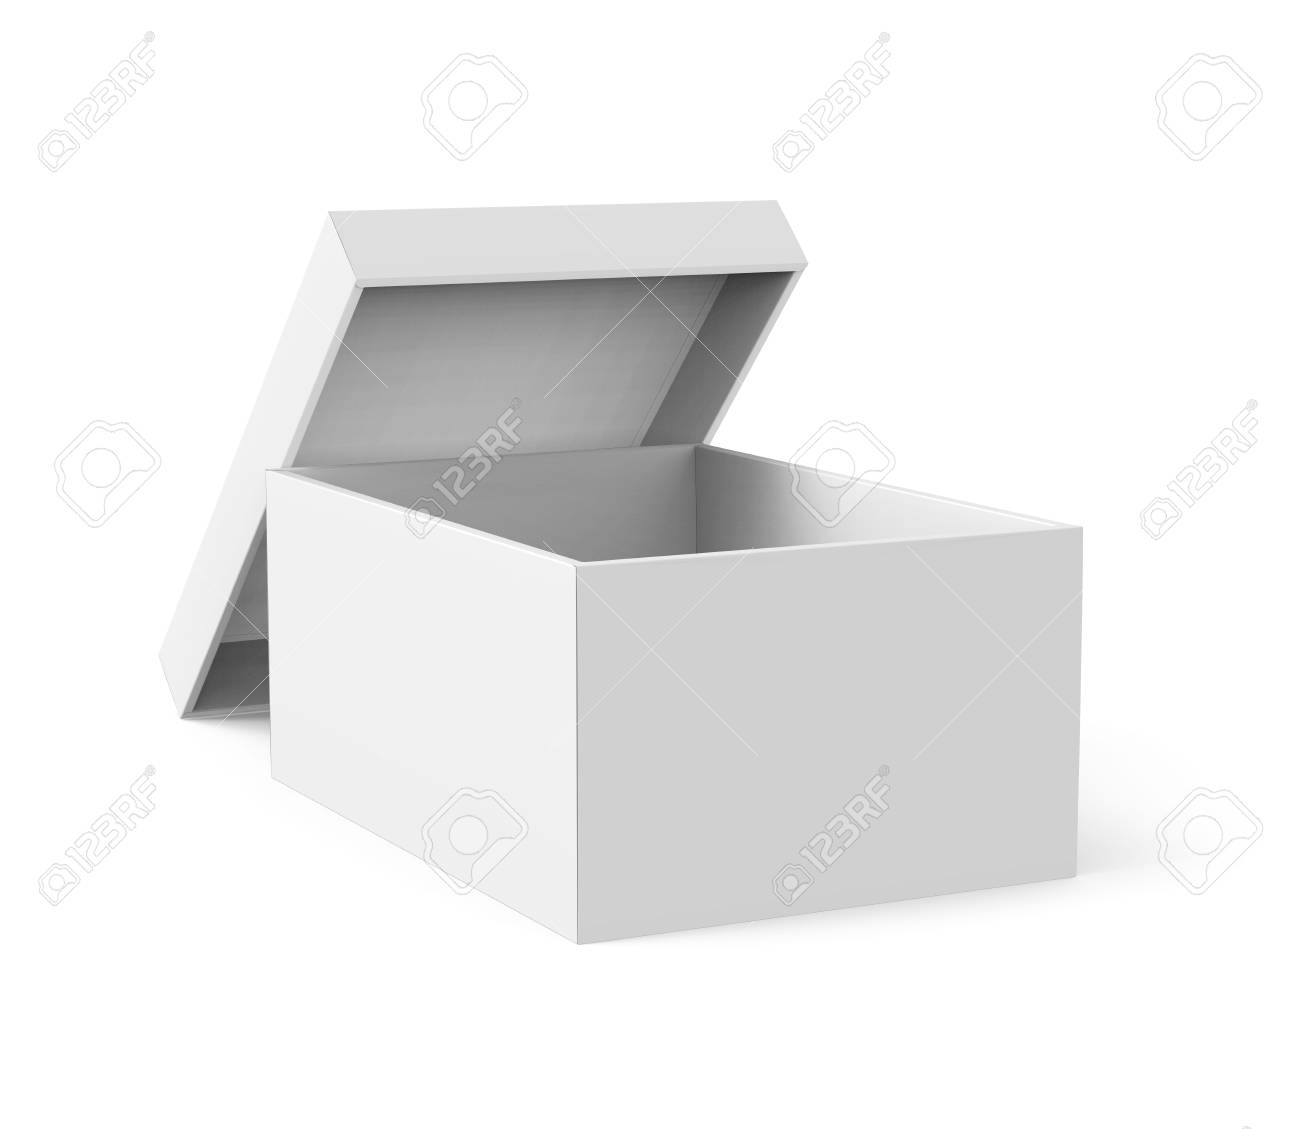 Blank Paper Box Template Single Mockup With Separate Lid Lean On It In 3d